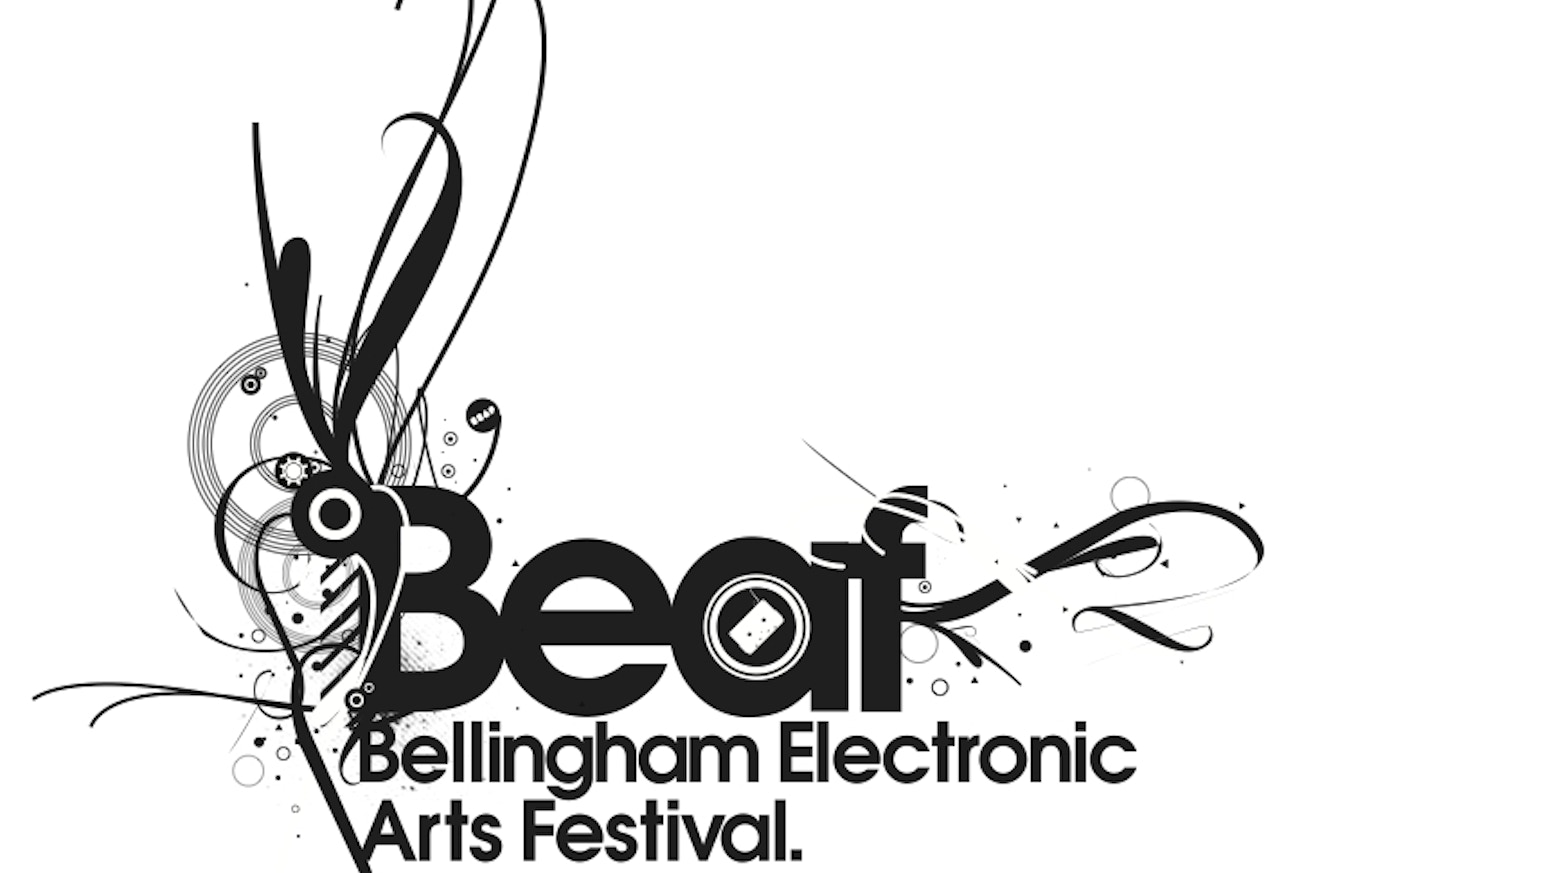 Bellingham Electronic Arts Festival 2011 by dave sound